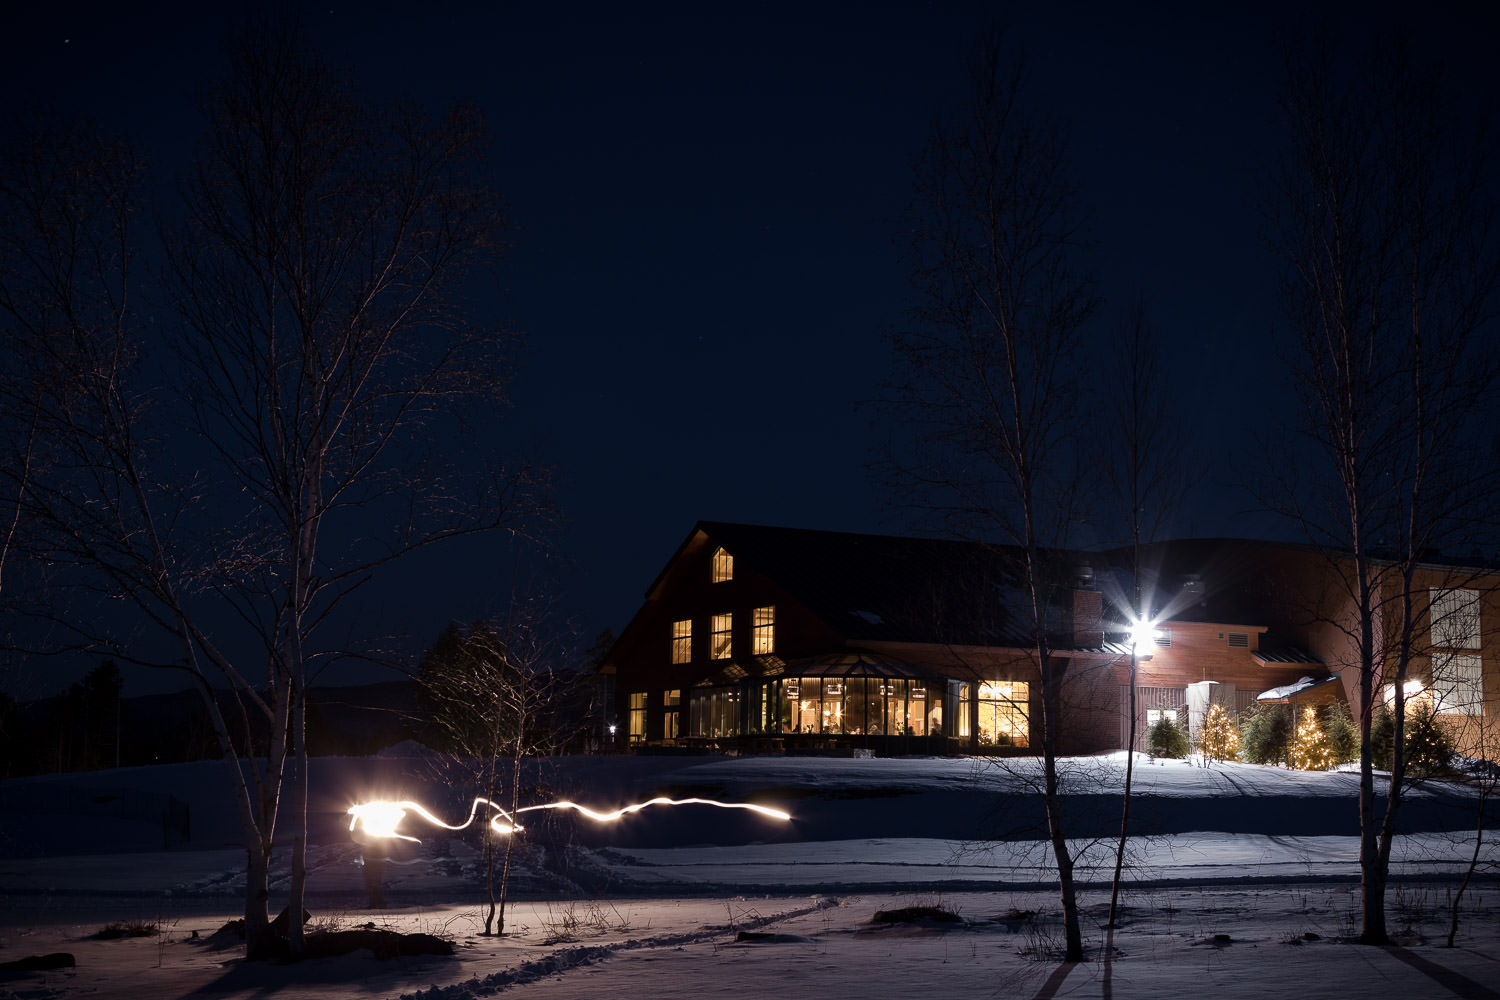 Exterior photo of the von Trapp Brewery Bierhall in Stowe Vermont used to create a composited twilight image by Vermont architecture photography Studio SB